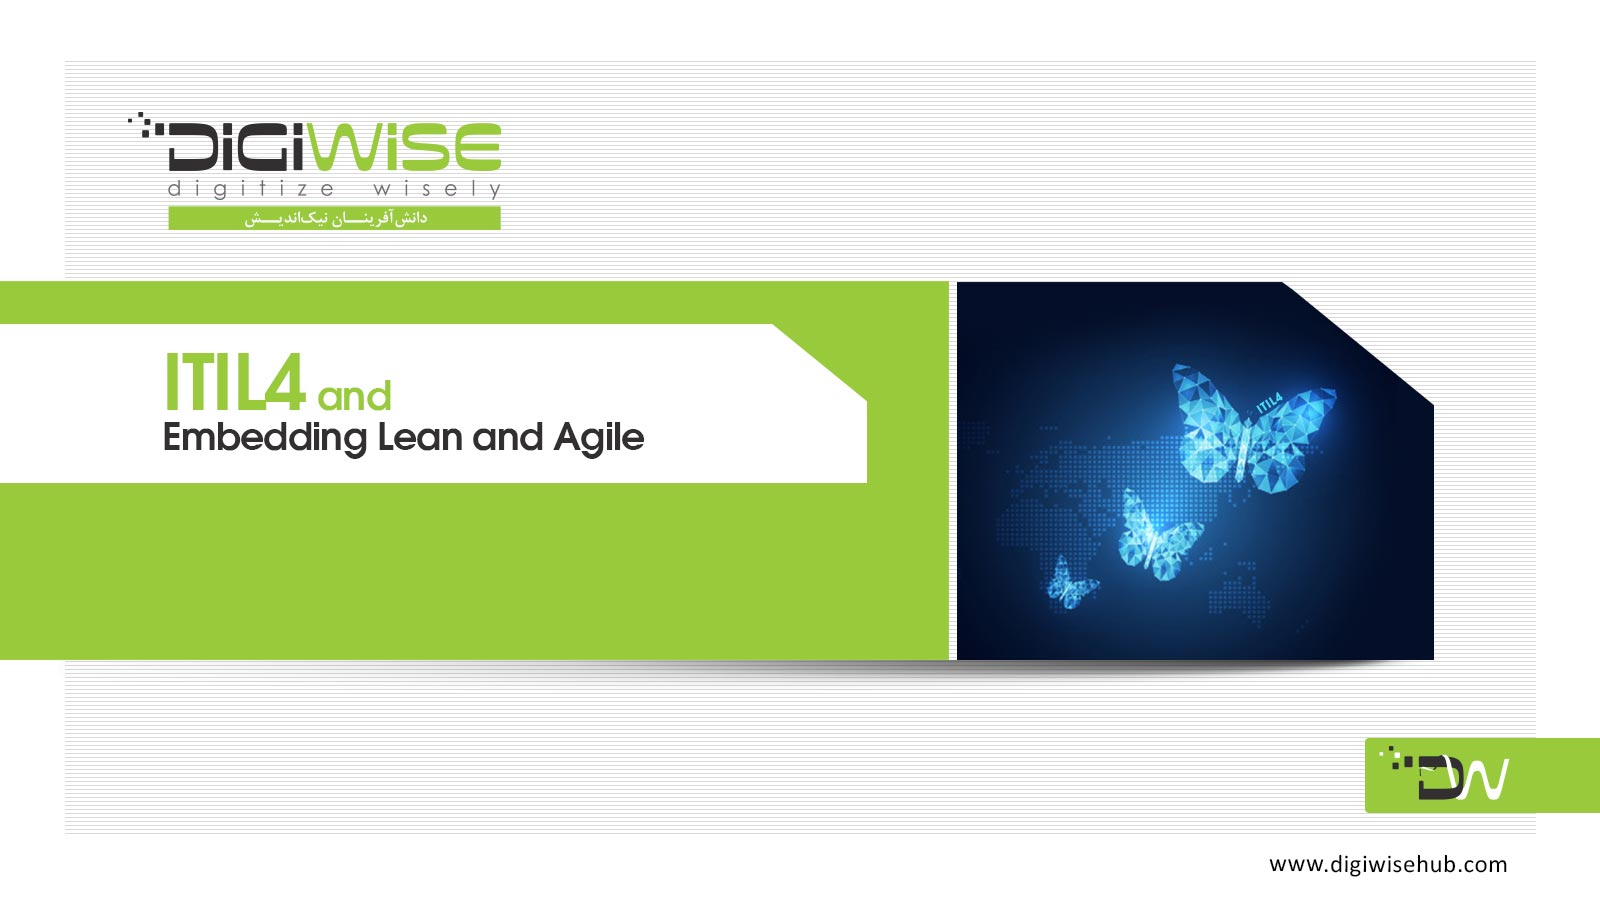 itil4 embedding lean and agile to move quickly